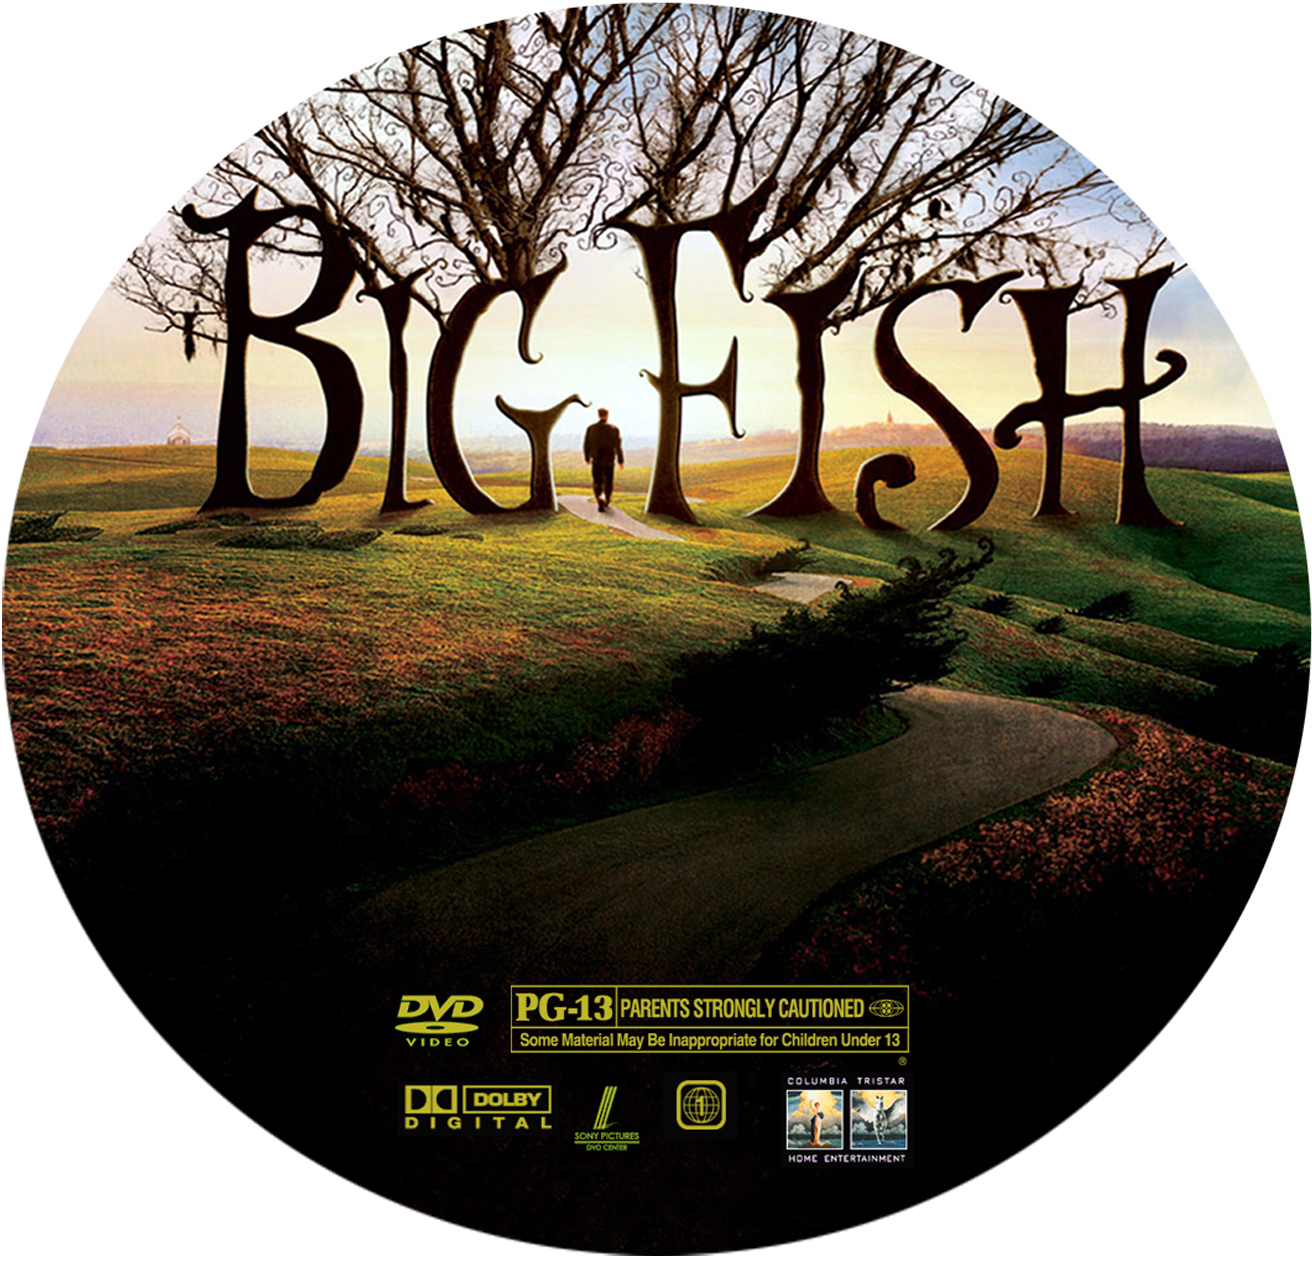 big fish 2003 movie poster and dvd cover art